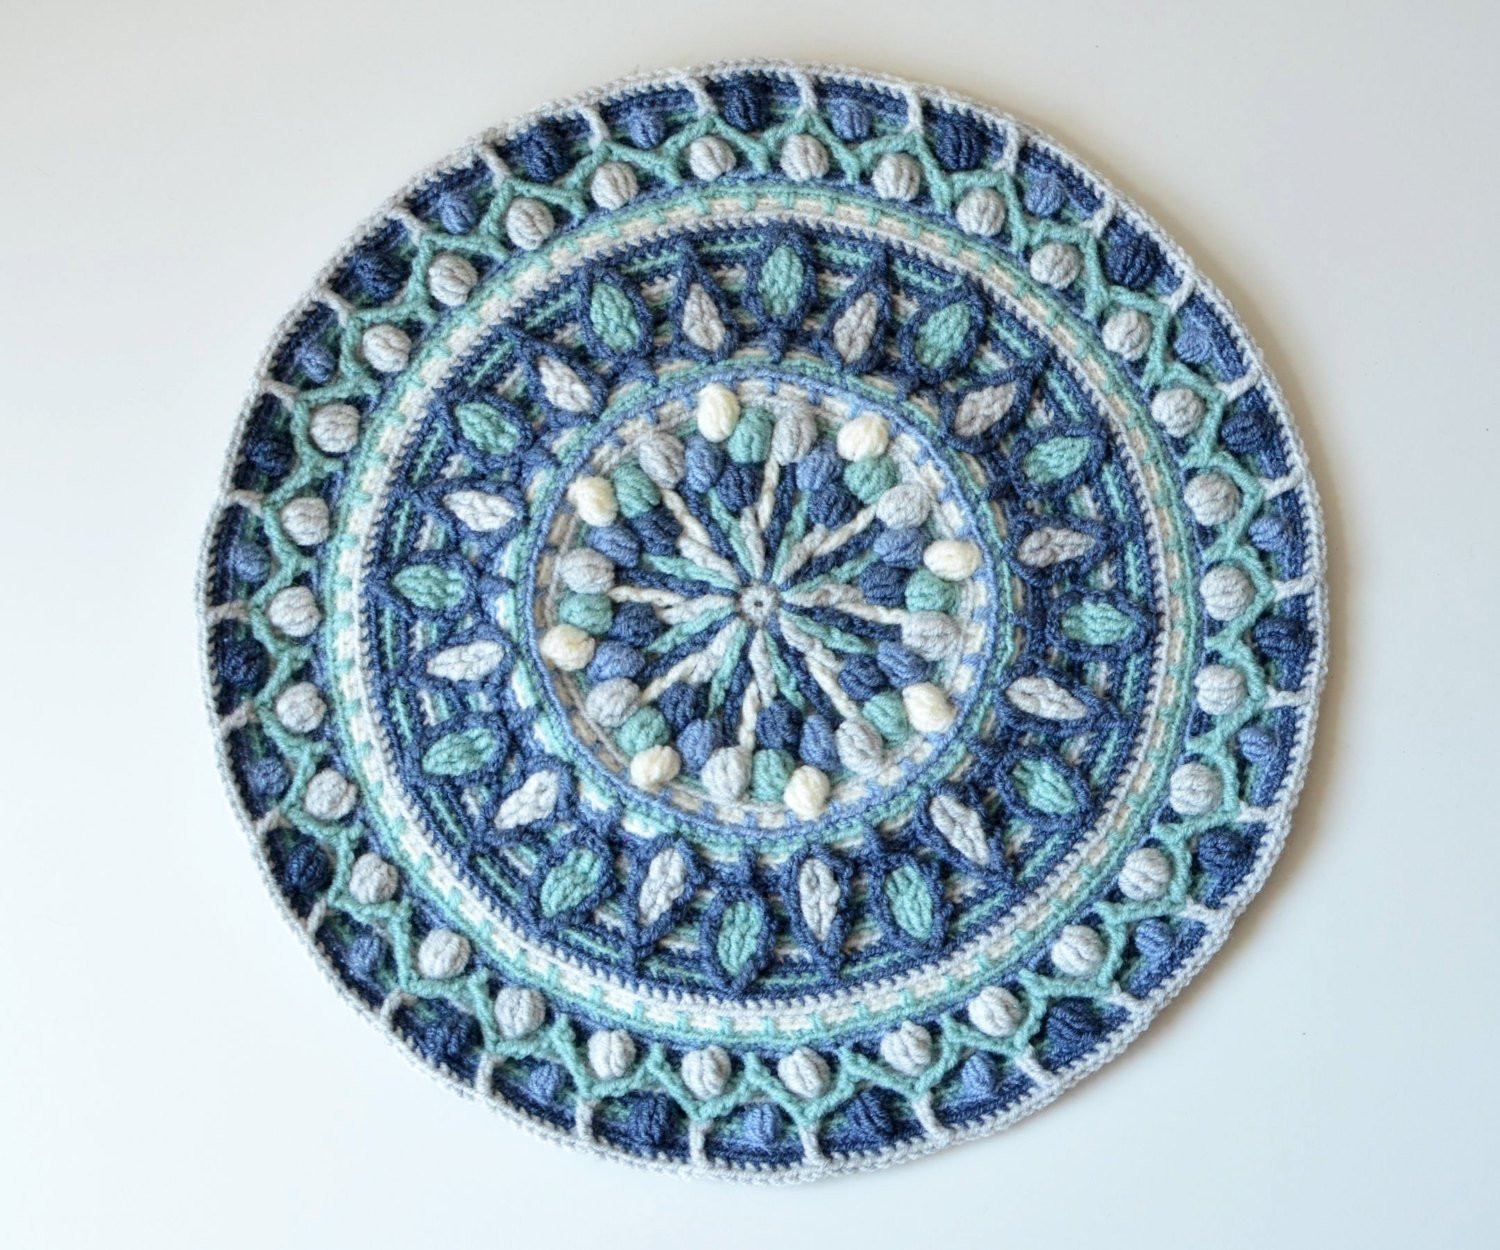 Crochet Mandalas Best Of Pattern Overlay Crochet Mandala Dandelion Round Mandala Of Incredible 41 Pics Crochet Mandalas